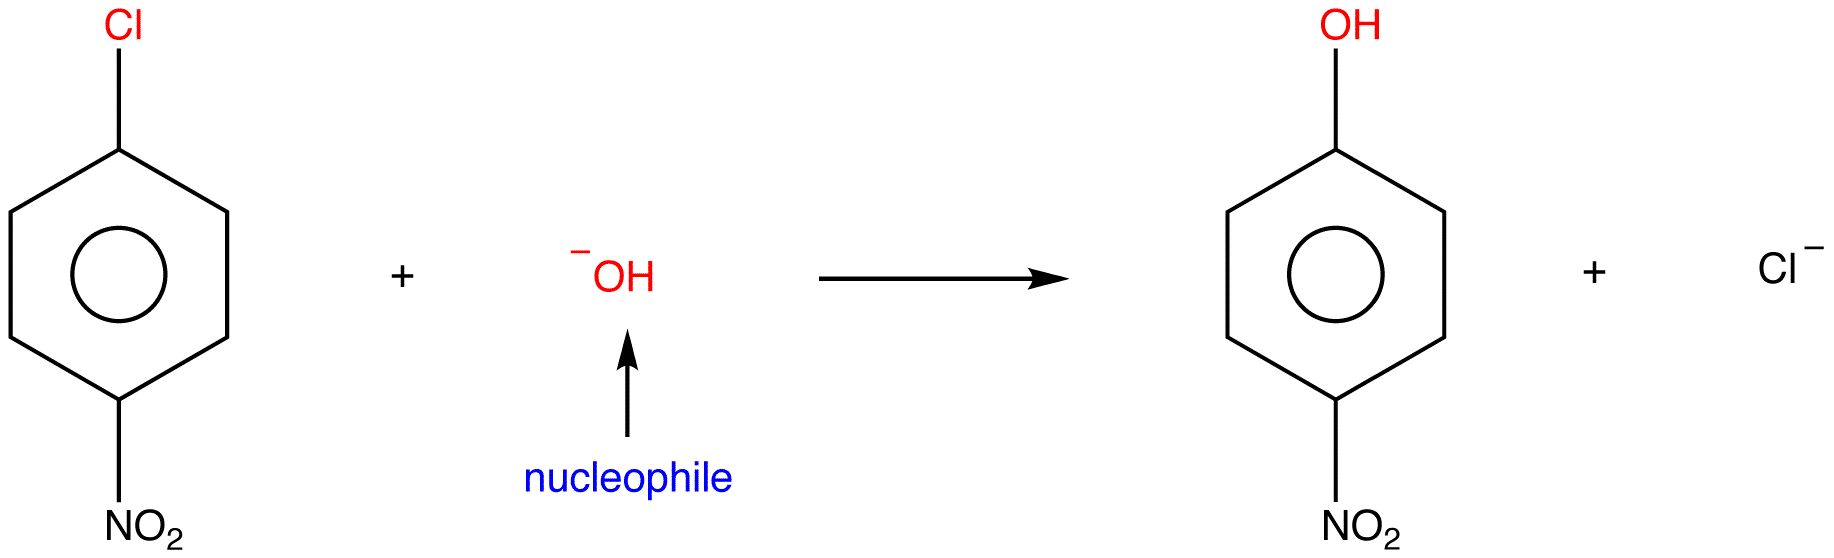 nucleophilic substitution reaction An sn1 reaction is a substitution (s) reaction that involves a nucleophile (n) and is unimolecular (1) unimolecular means that the speed of the reaction depends on only one molecule: the nucleophile.